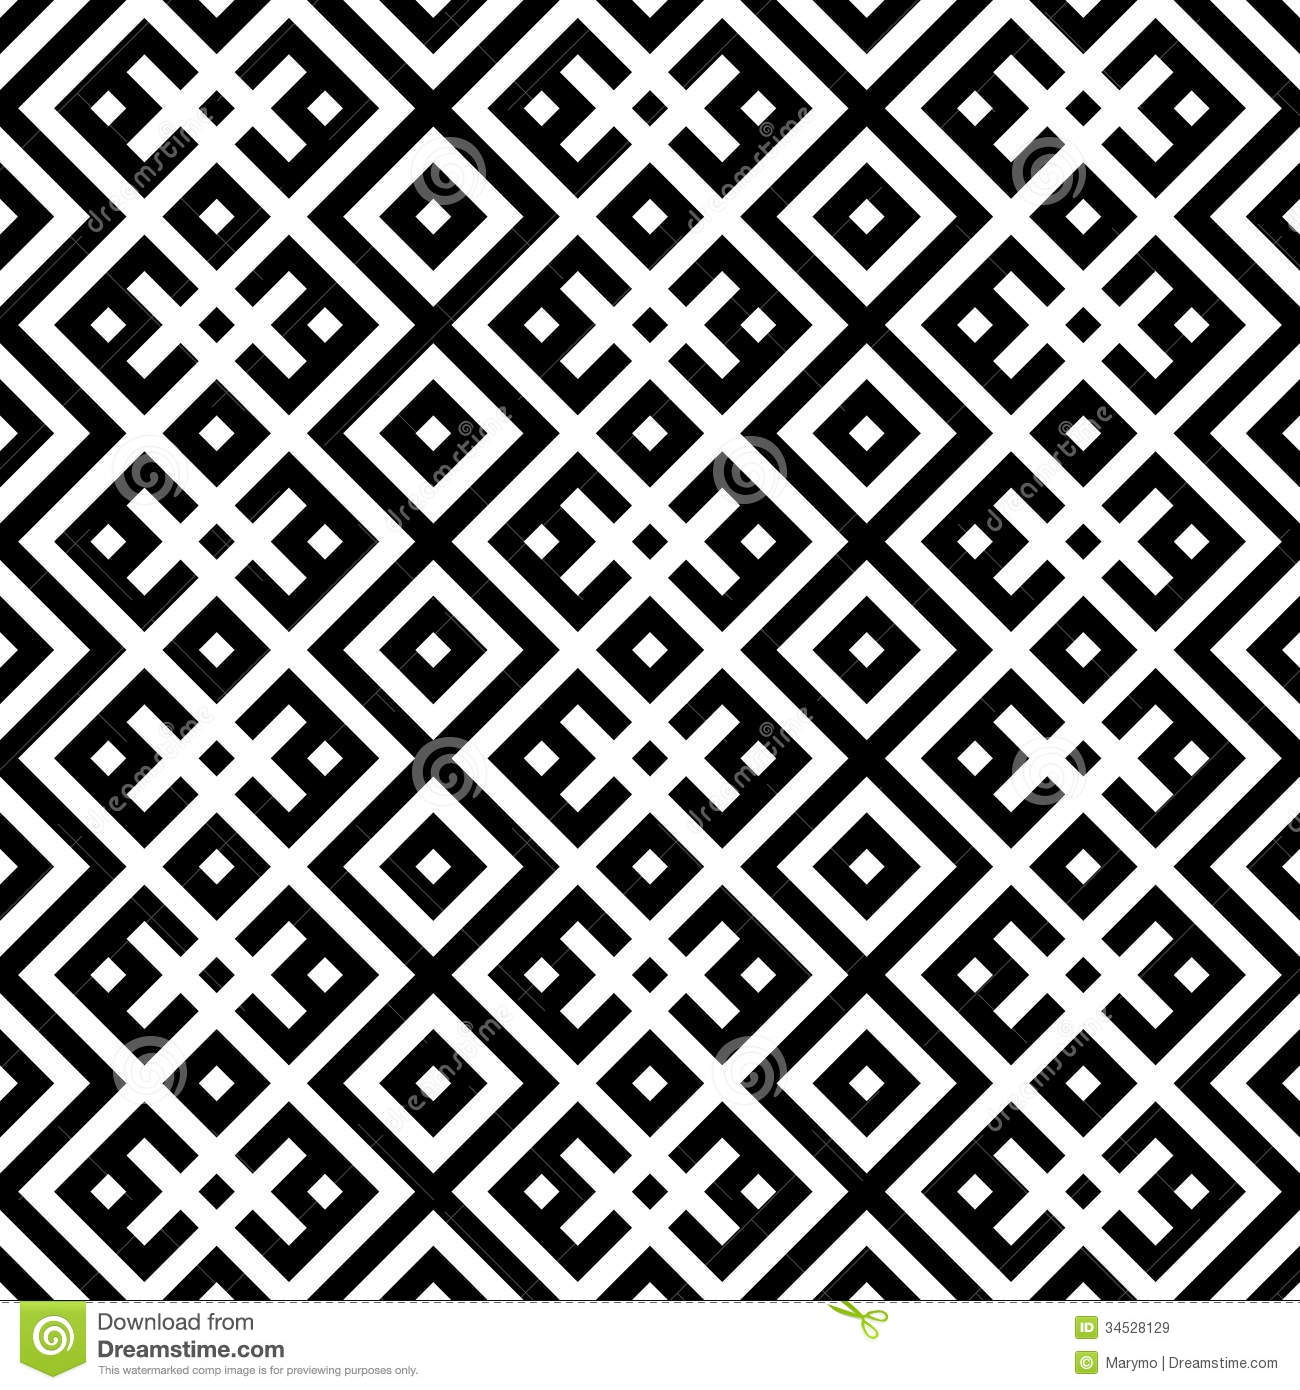 Monochromatic Ethnic Seamless Background. Royalty Free Stock Images